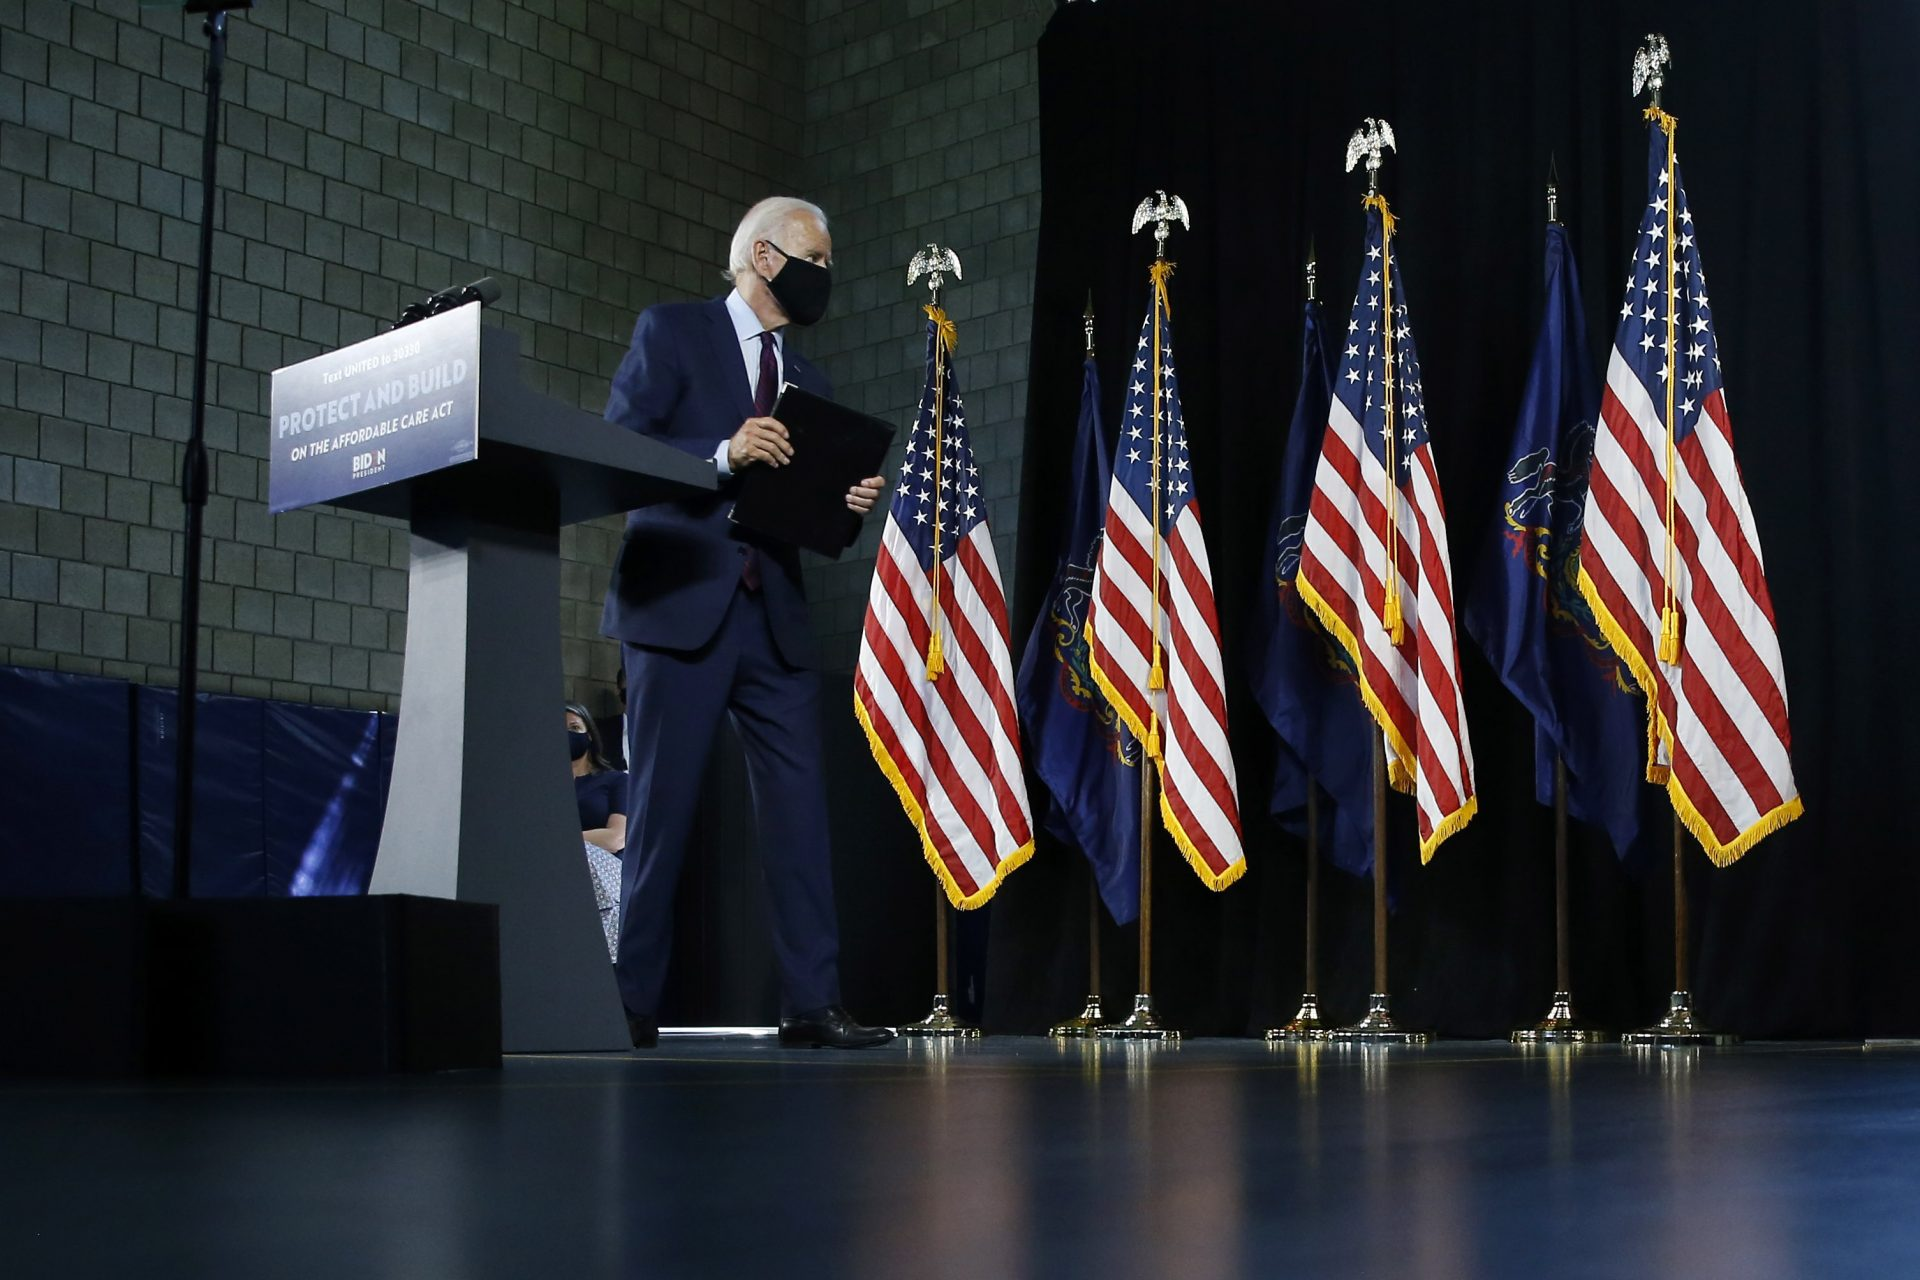 Democratic presidential candidate, former Vice President Joe Biden departs after speaking at an event Thursday, June 25, 2020, in Lancaster, Pa.